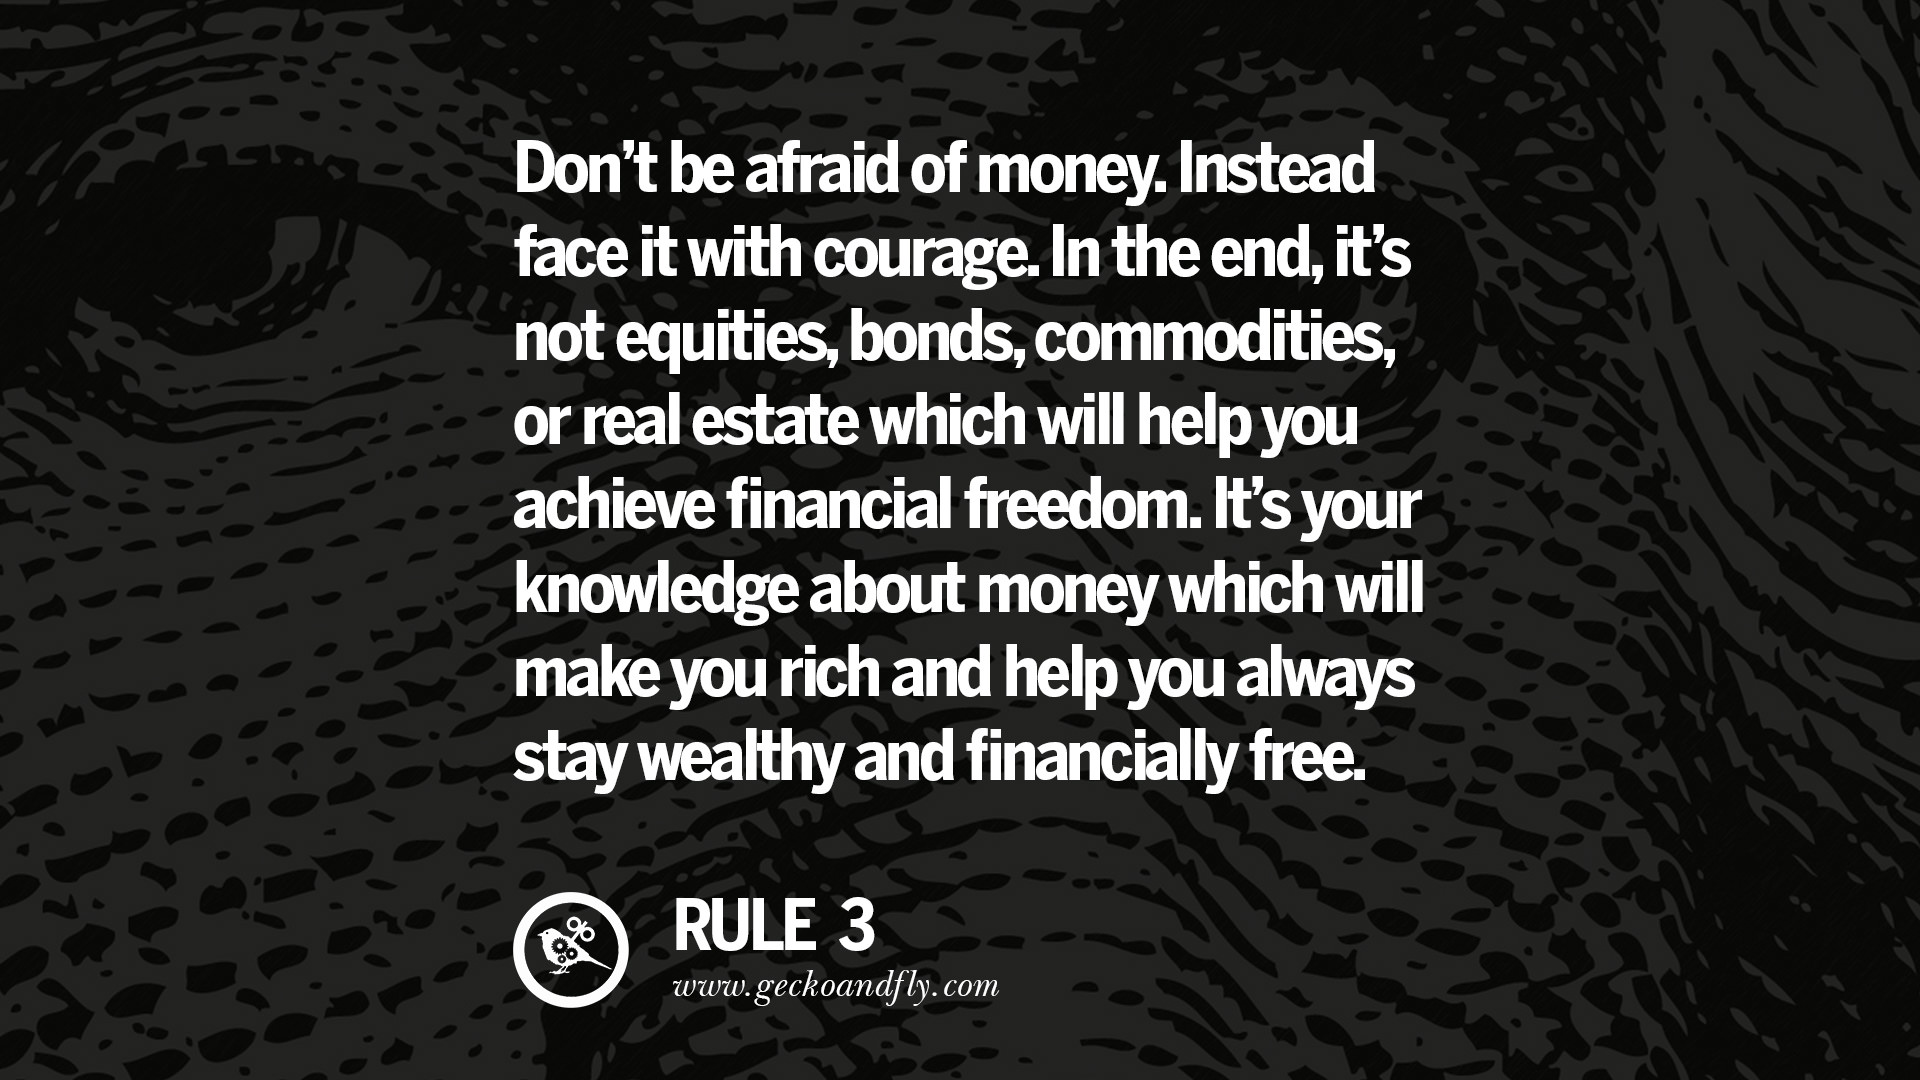 Financial Freedom Quotes 10 Golden Rules On Money & 20 Inspiring Quotes About Money